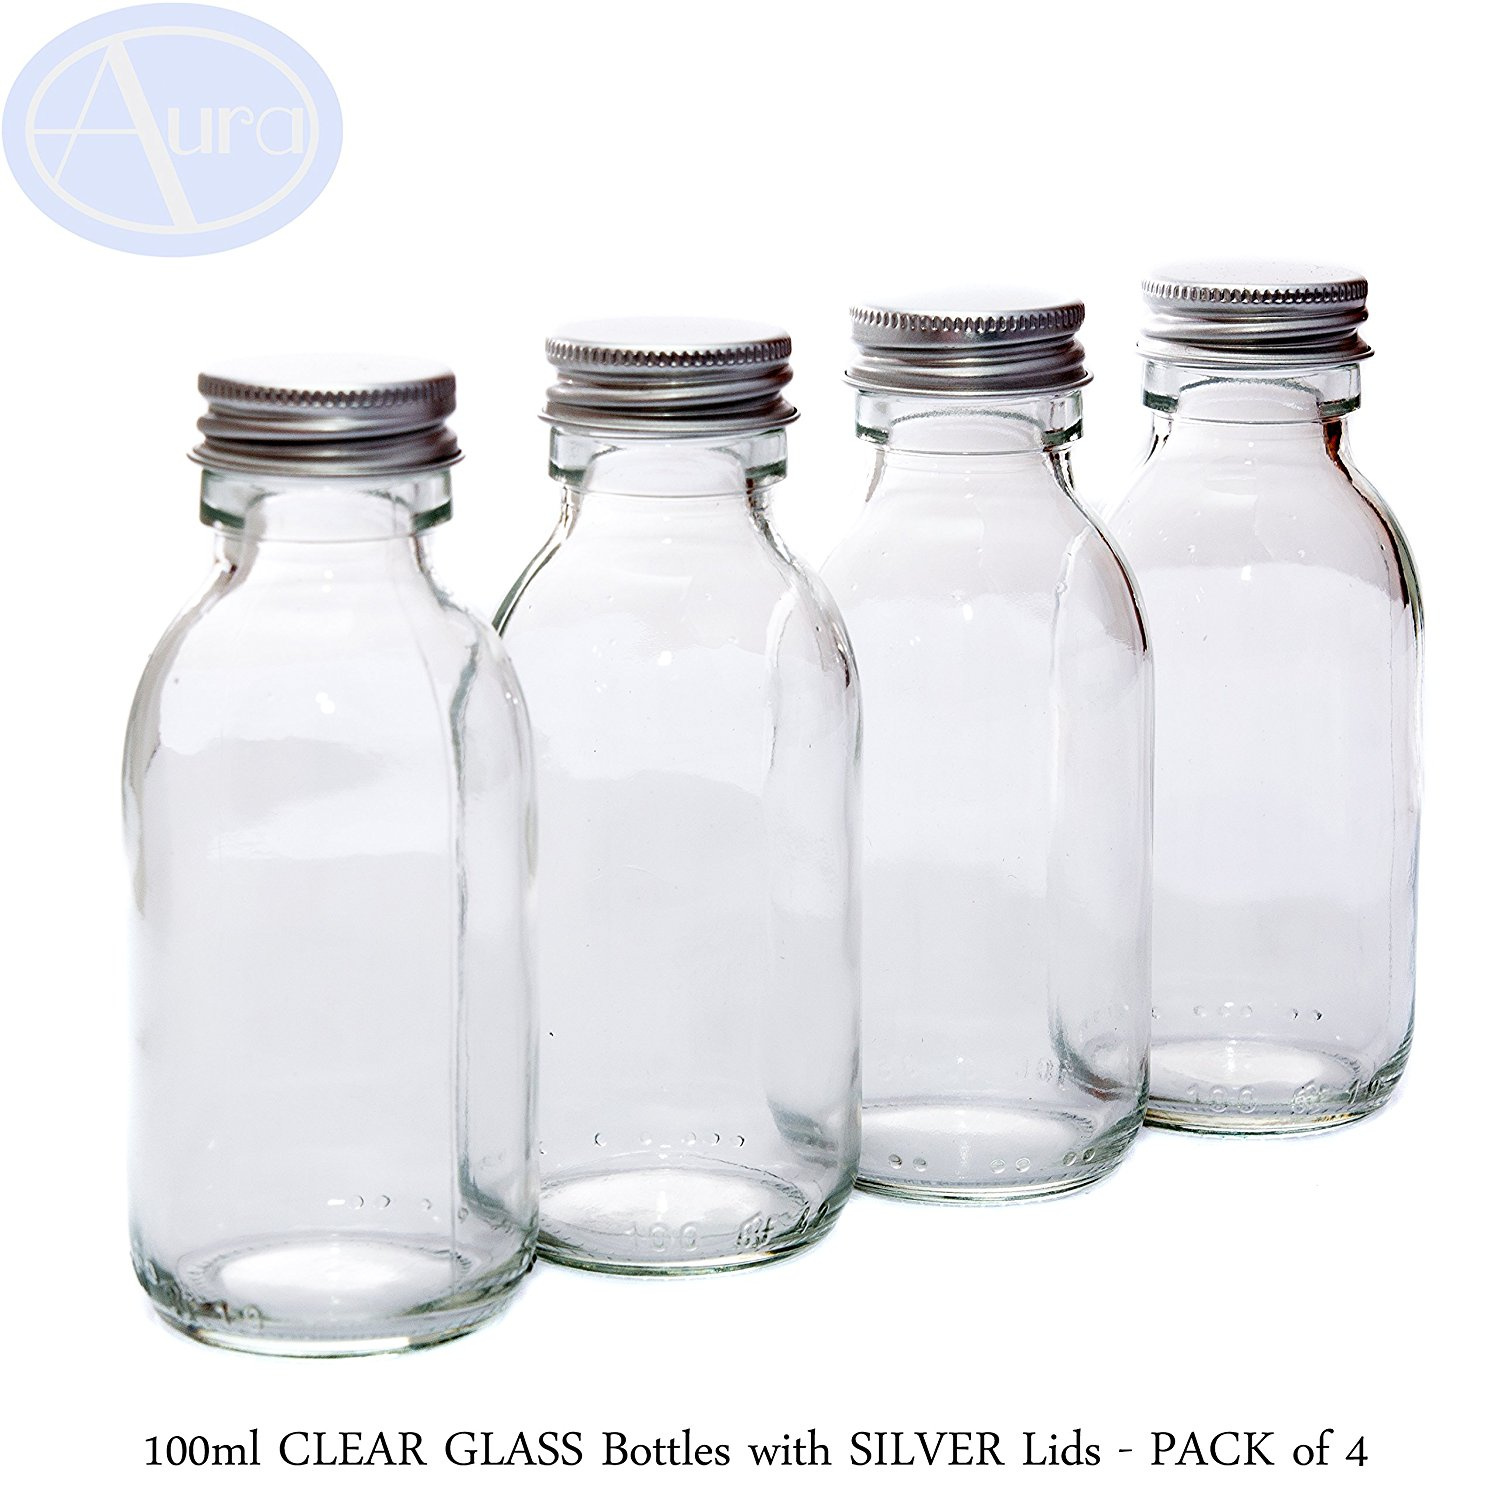 2d6a59201181 PACK of 4 - 100ml CLEAR GLASS Bottles with Pretty SILVER Lids. Perfect for  Skincare, Herbs & Spices etc